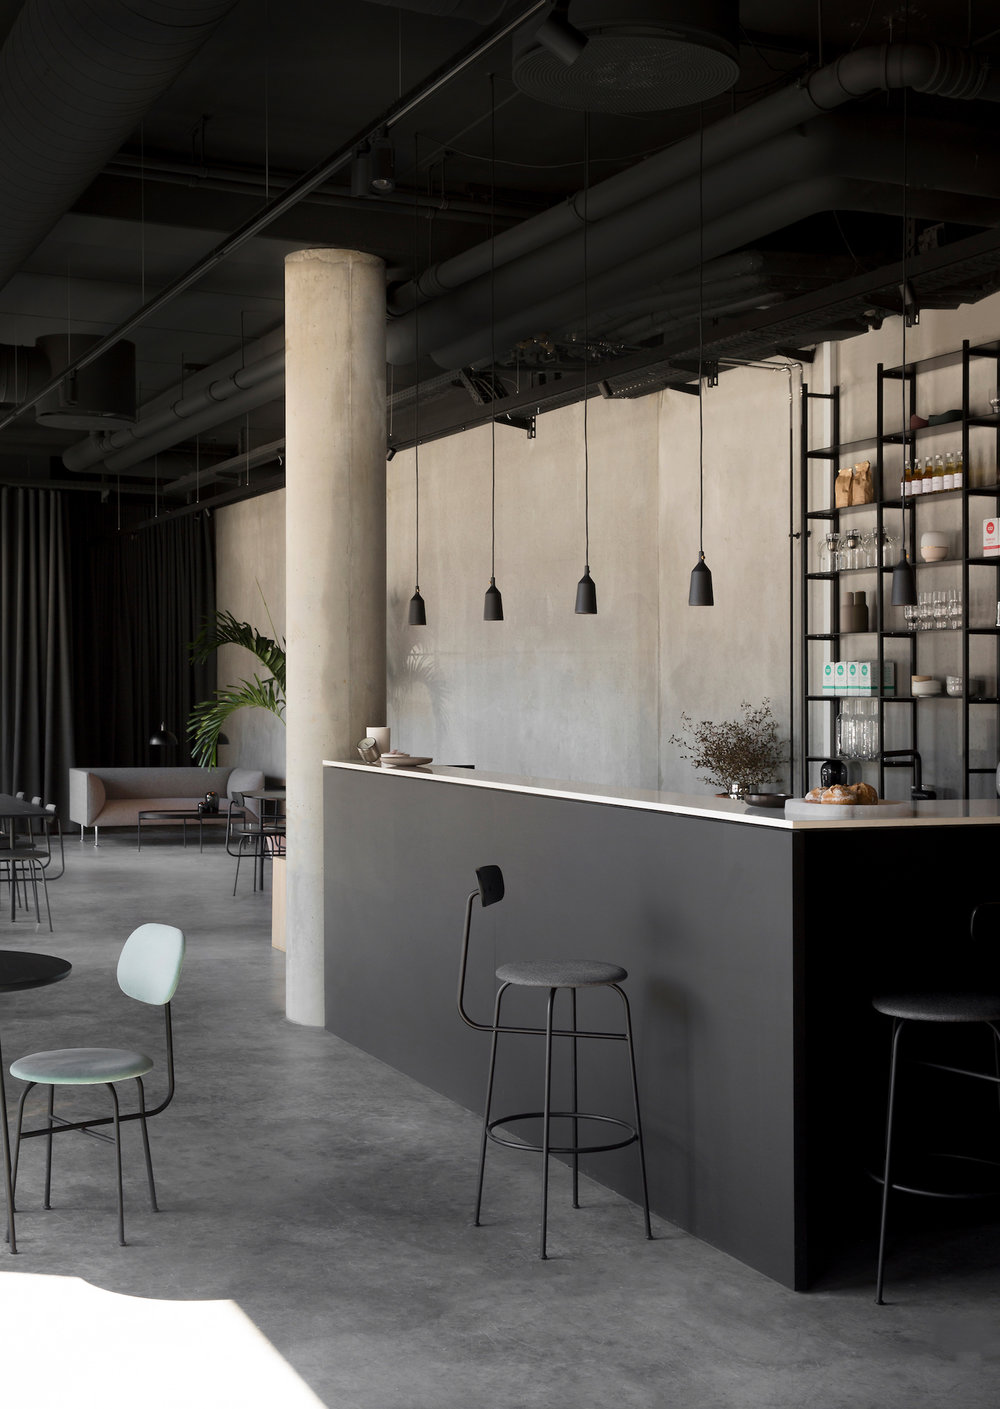 Menu Space designed by Norm Architects